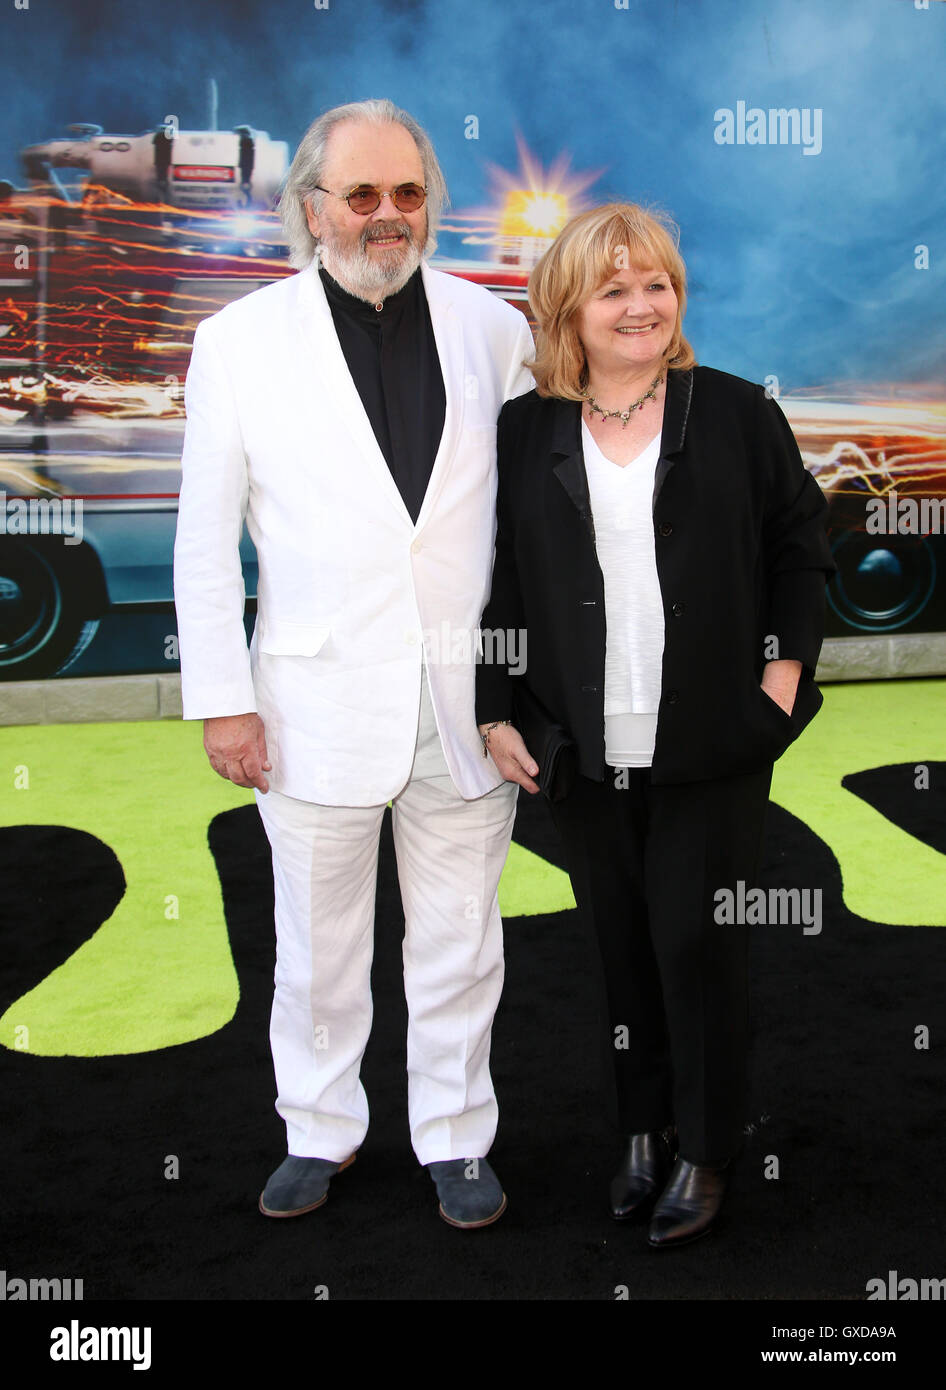 Los Angeles premiere of 'Ghostbusters' - Arrivals  Featuring: Lesley Nicol, David Keith Where: Los Angeles, - Stock Image